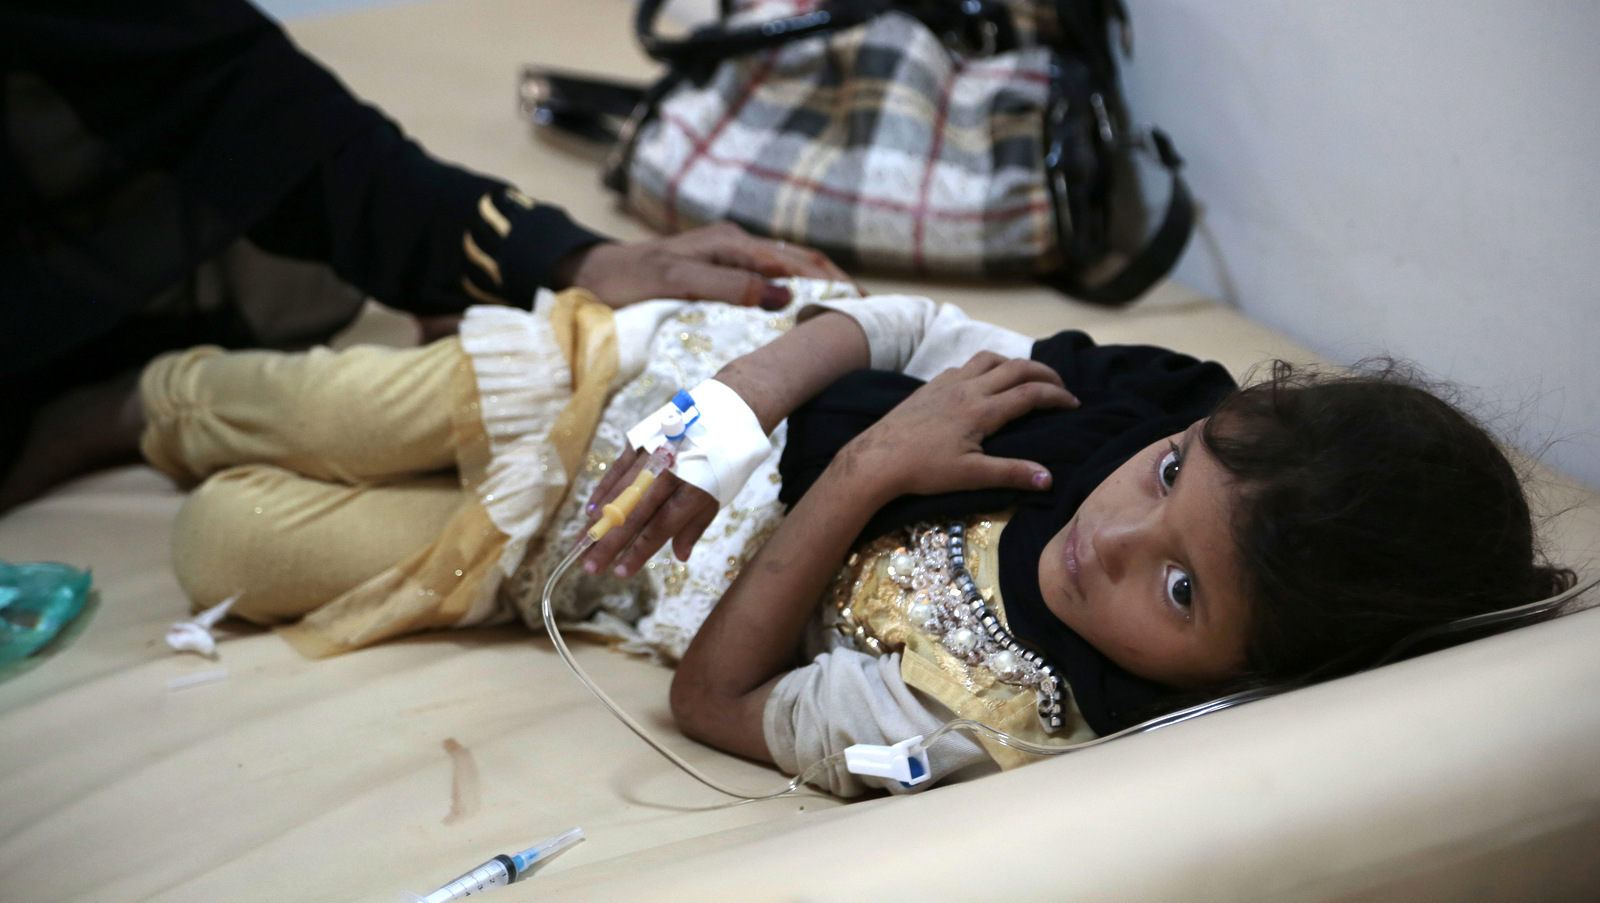 A girl is treated for a suspected cholera infection at a hospital in Sanaa, Yemen. The World Health Organization says a rapidly spreading cholera outbreak in Yemen has claimed thousands of lives since April and is suspected of affecting 246,000 people. (AP/Hani Mohammed)